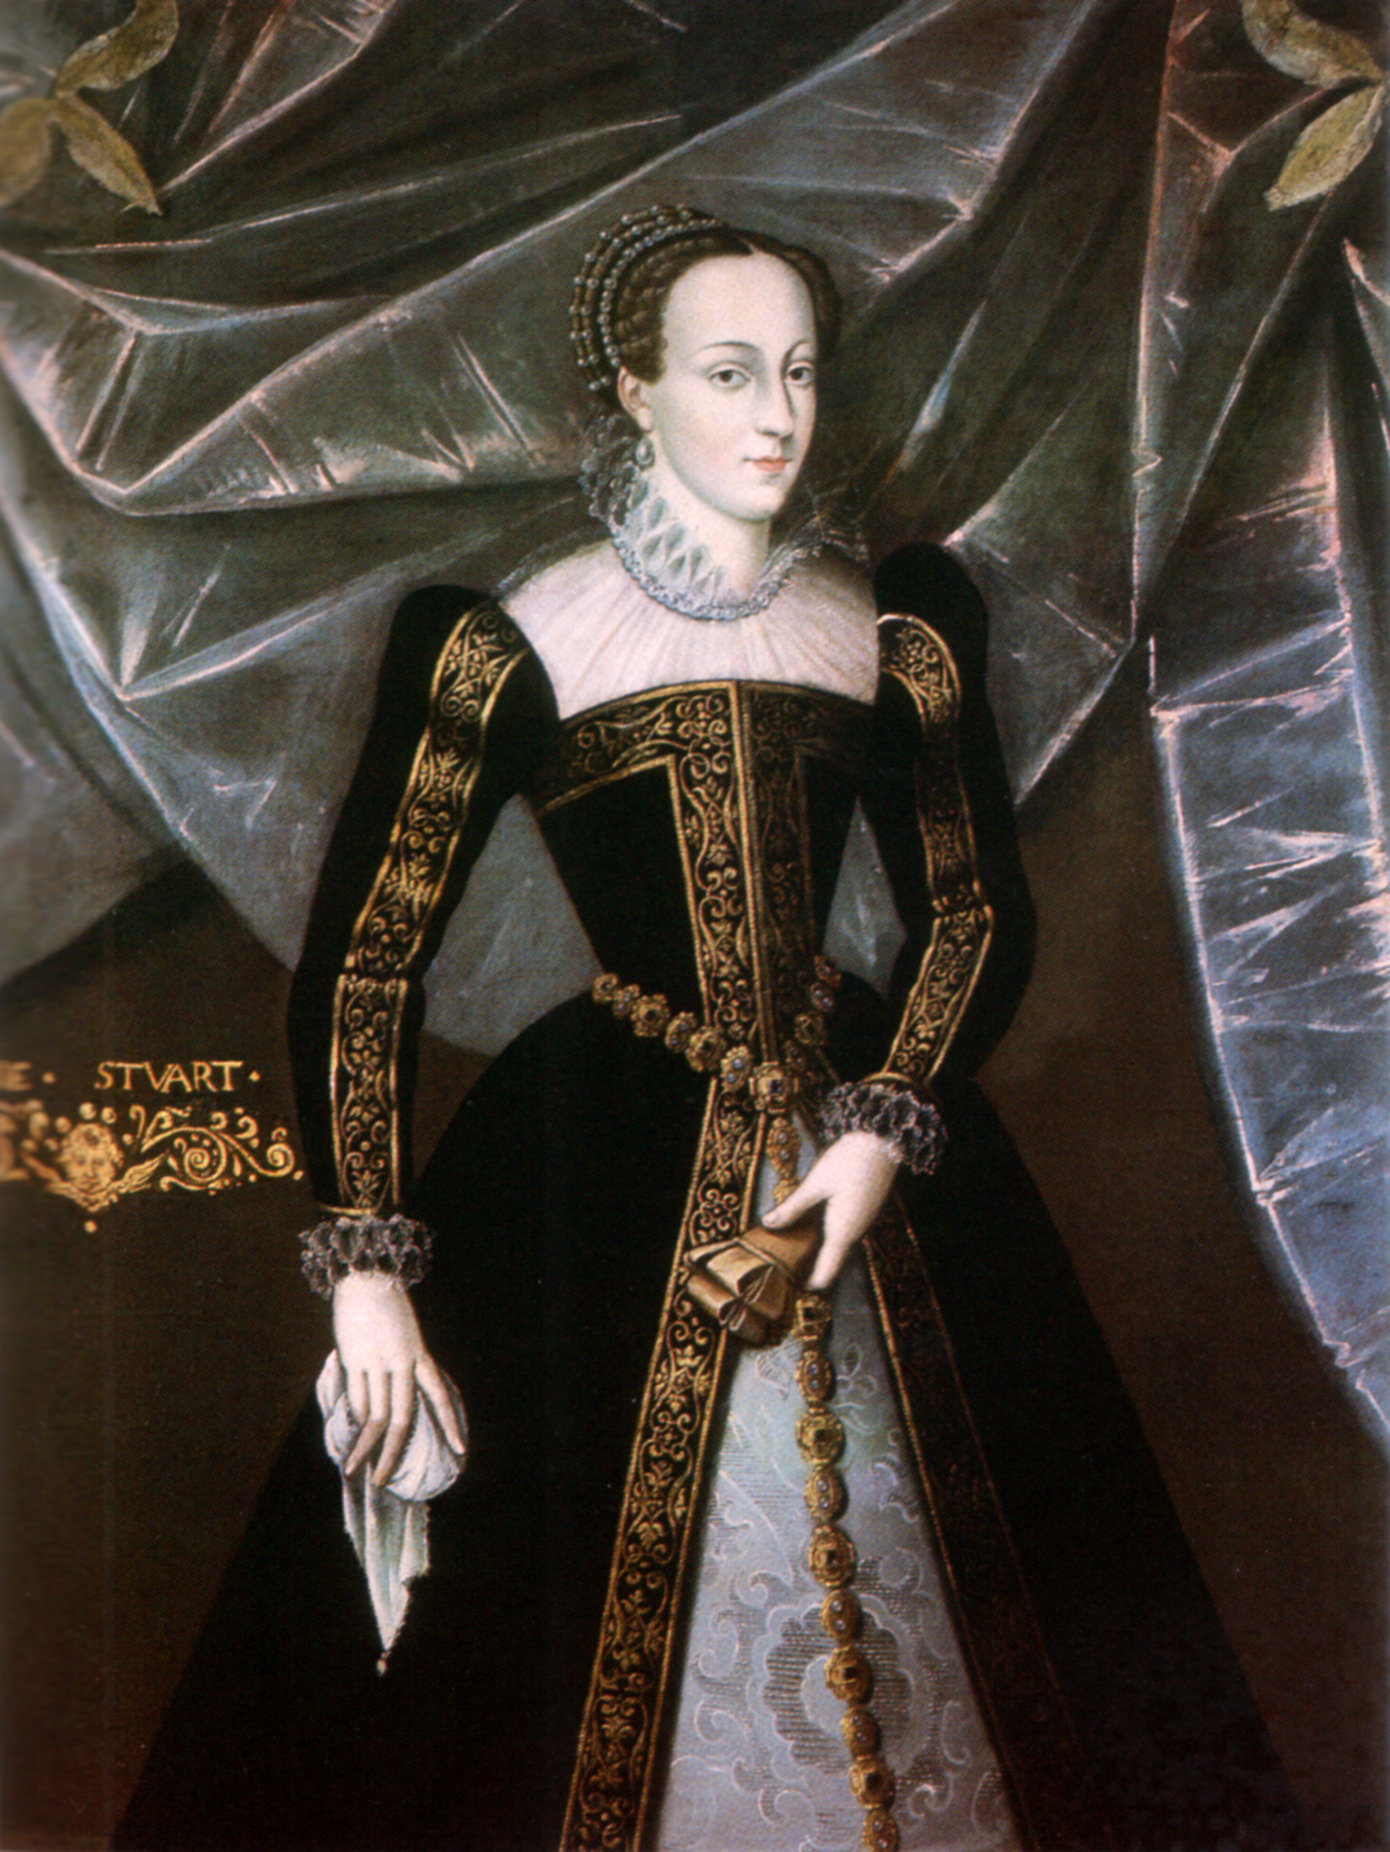 https://upload.wikimedia.org/wikipedia/commons/1/1c/Mary_Queen_of_Scots_Blairs_Museum.jpg